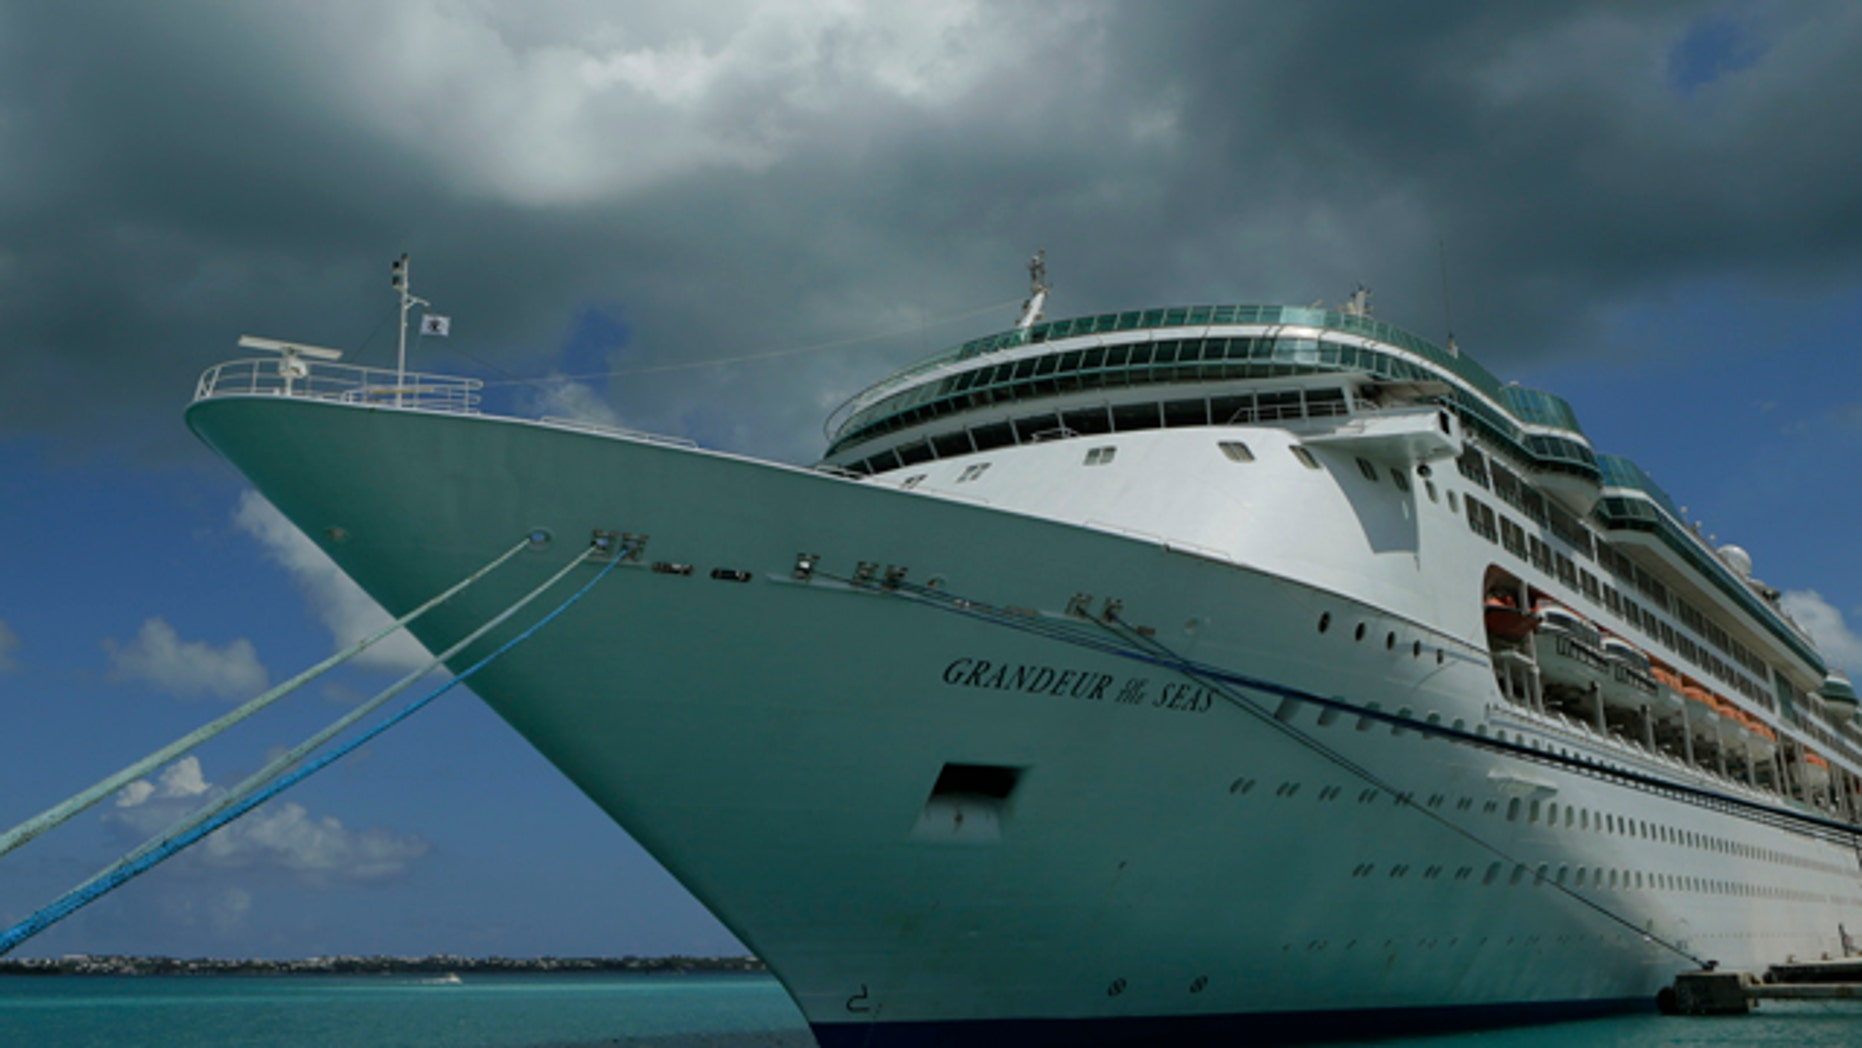 July 15, 2013: The Royal Caribbean cruise ship 'Grandeur of the Seas' is seen  while docked at the Royal Naval Dockyard near the port of Hamilton, Bermuda.